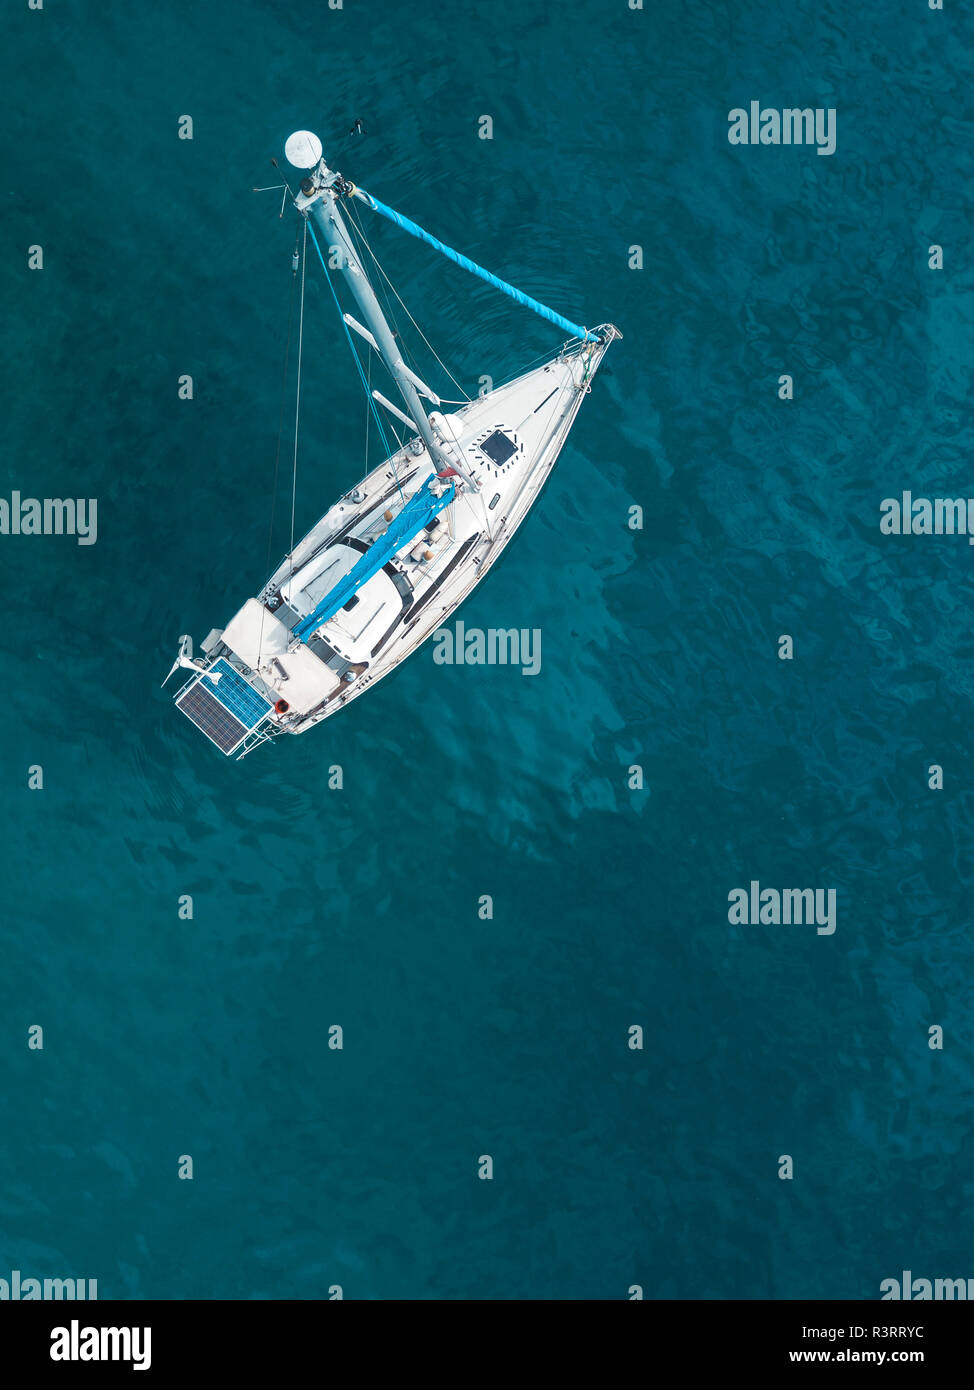 Indonesia, Bali, Aerial view of sailing boat Stock Photo